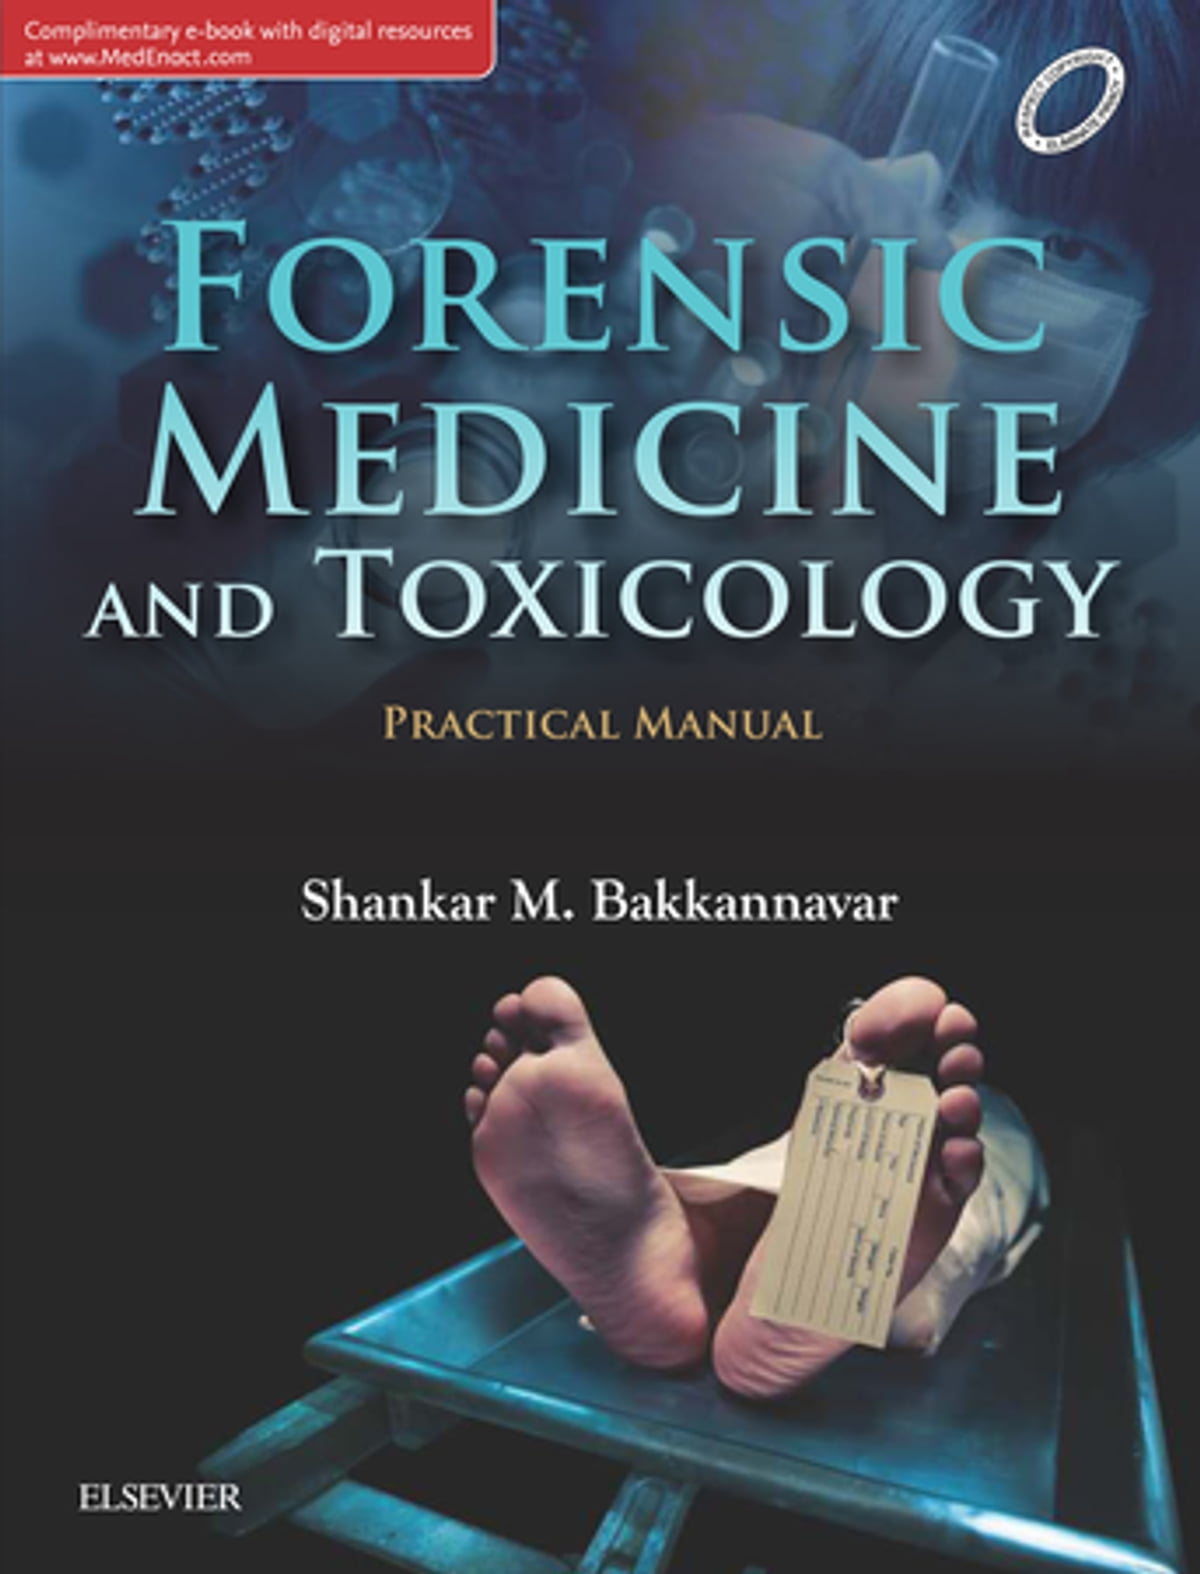 Forensic Medicine And Toxicology Practical Manual 1st Edition E Book Ebook By Shankar M Bakkannavar 9788131250471 Rakuten Kobo United States